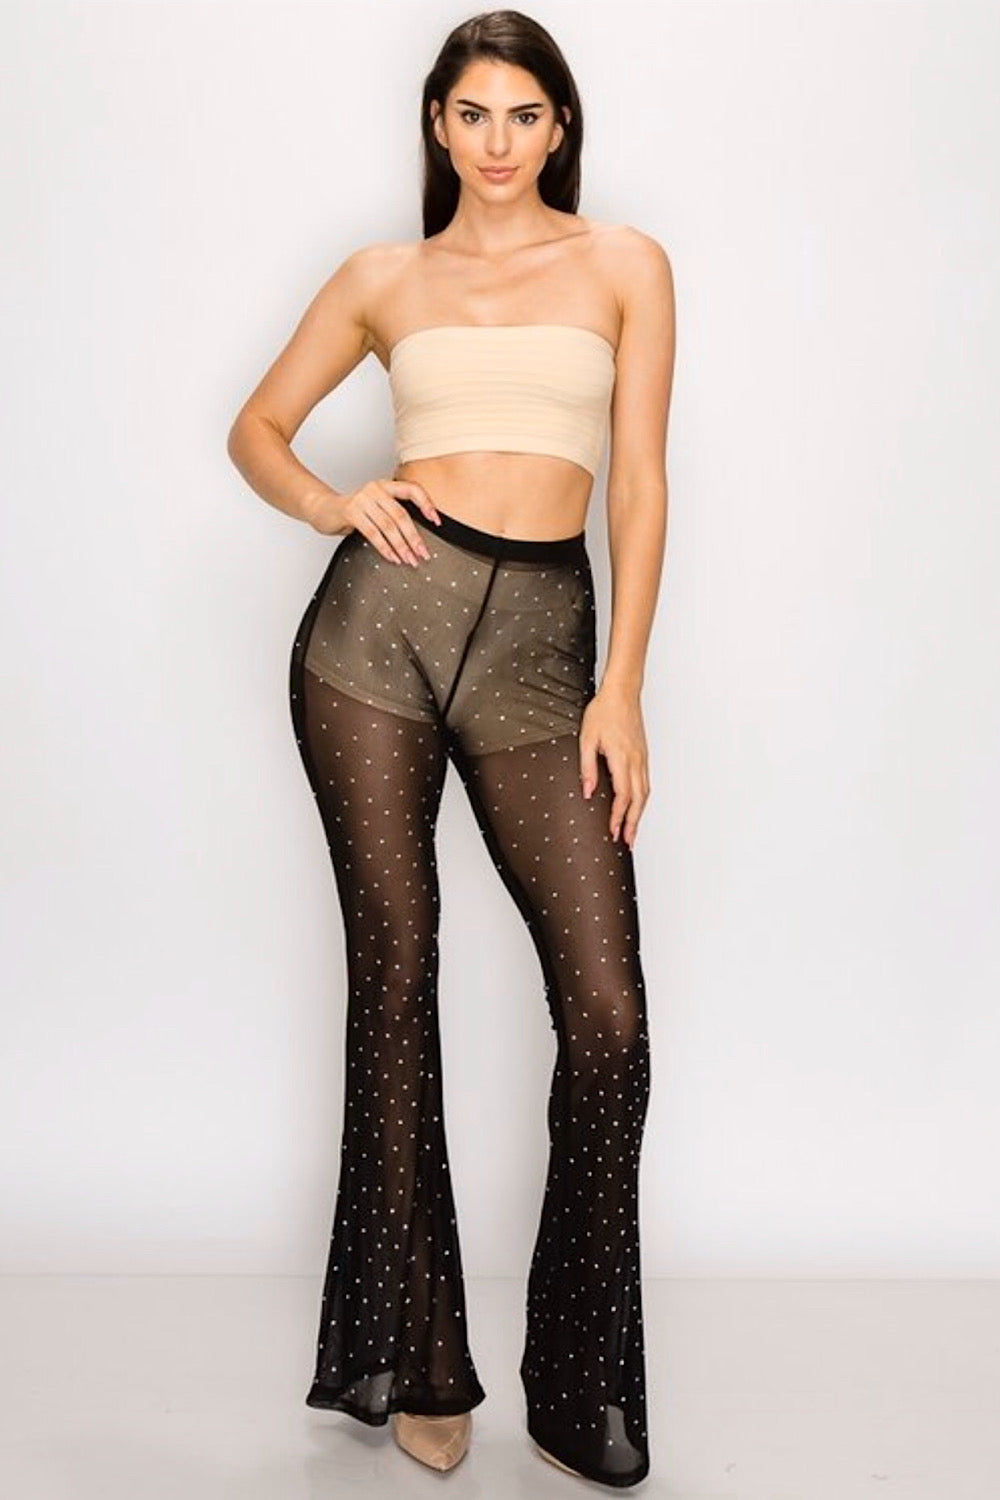 Show Some Flare Mesh Pants